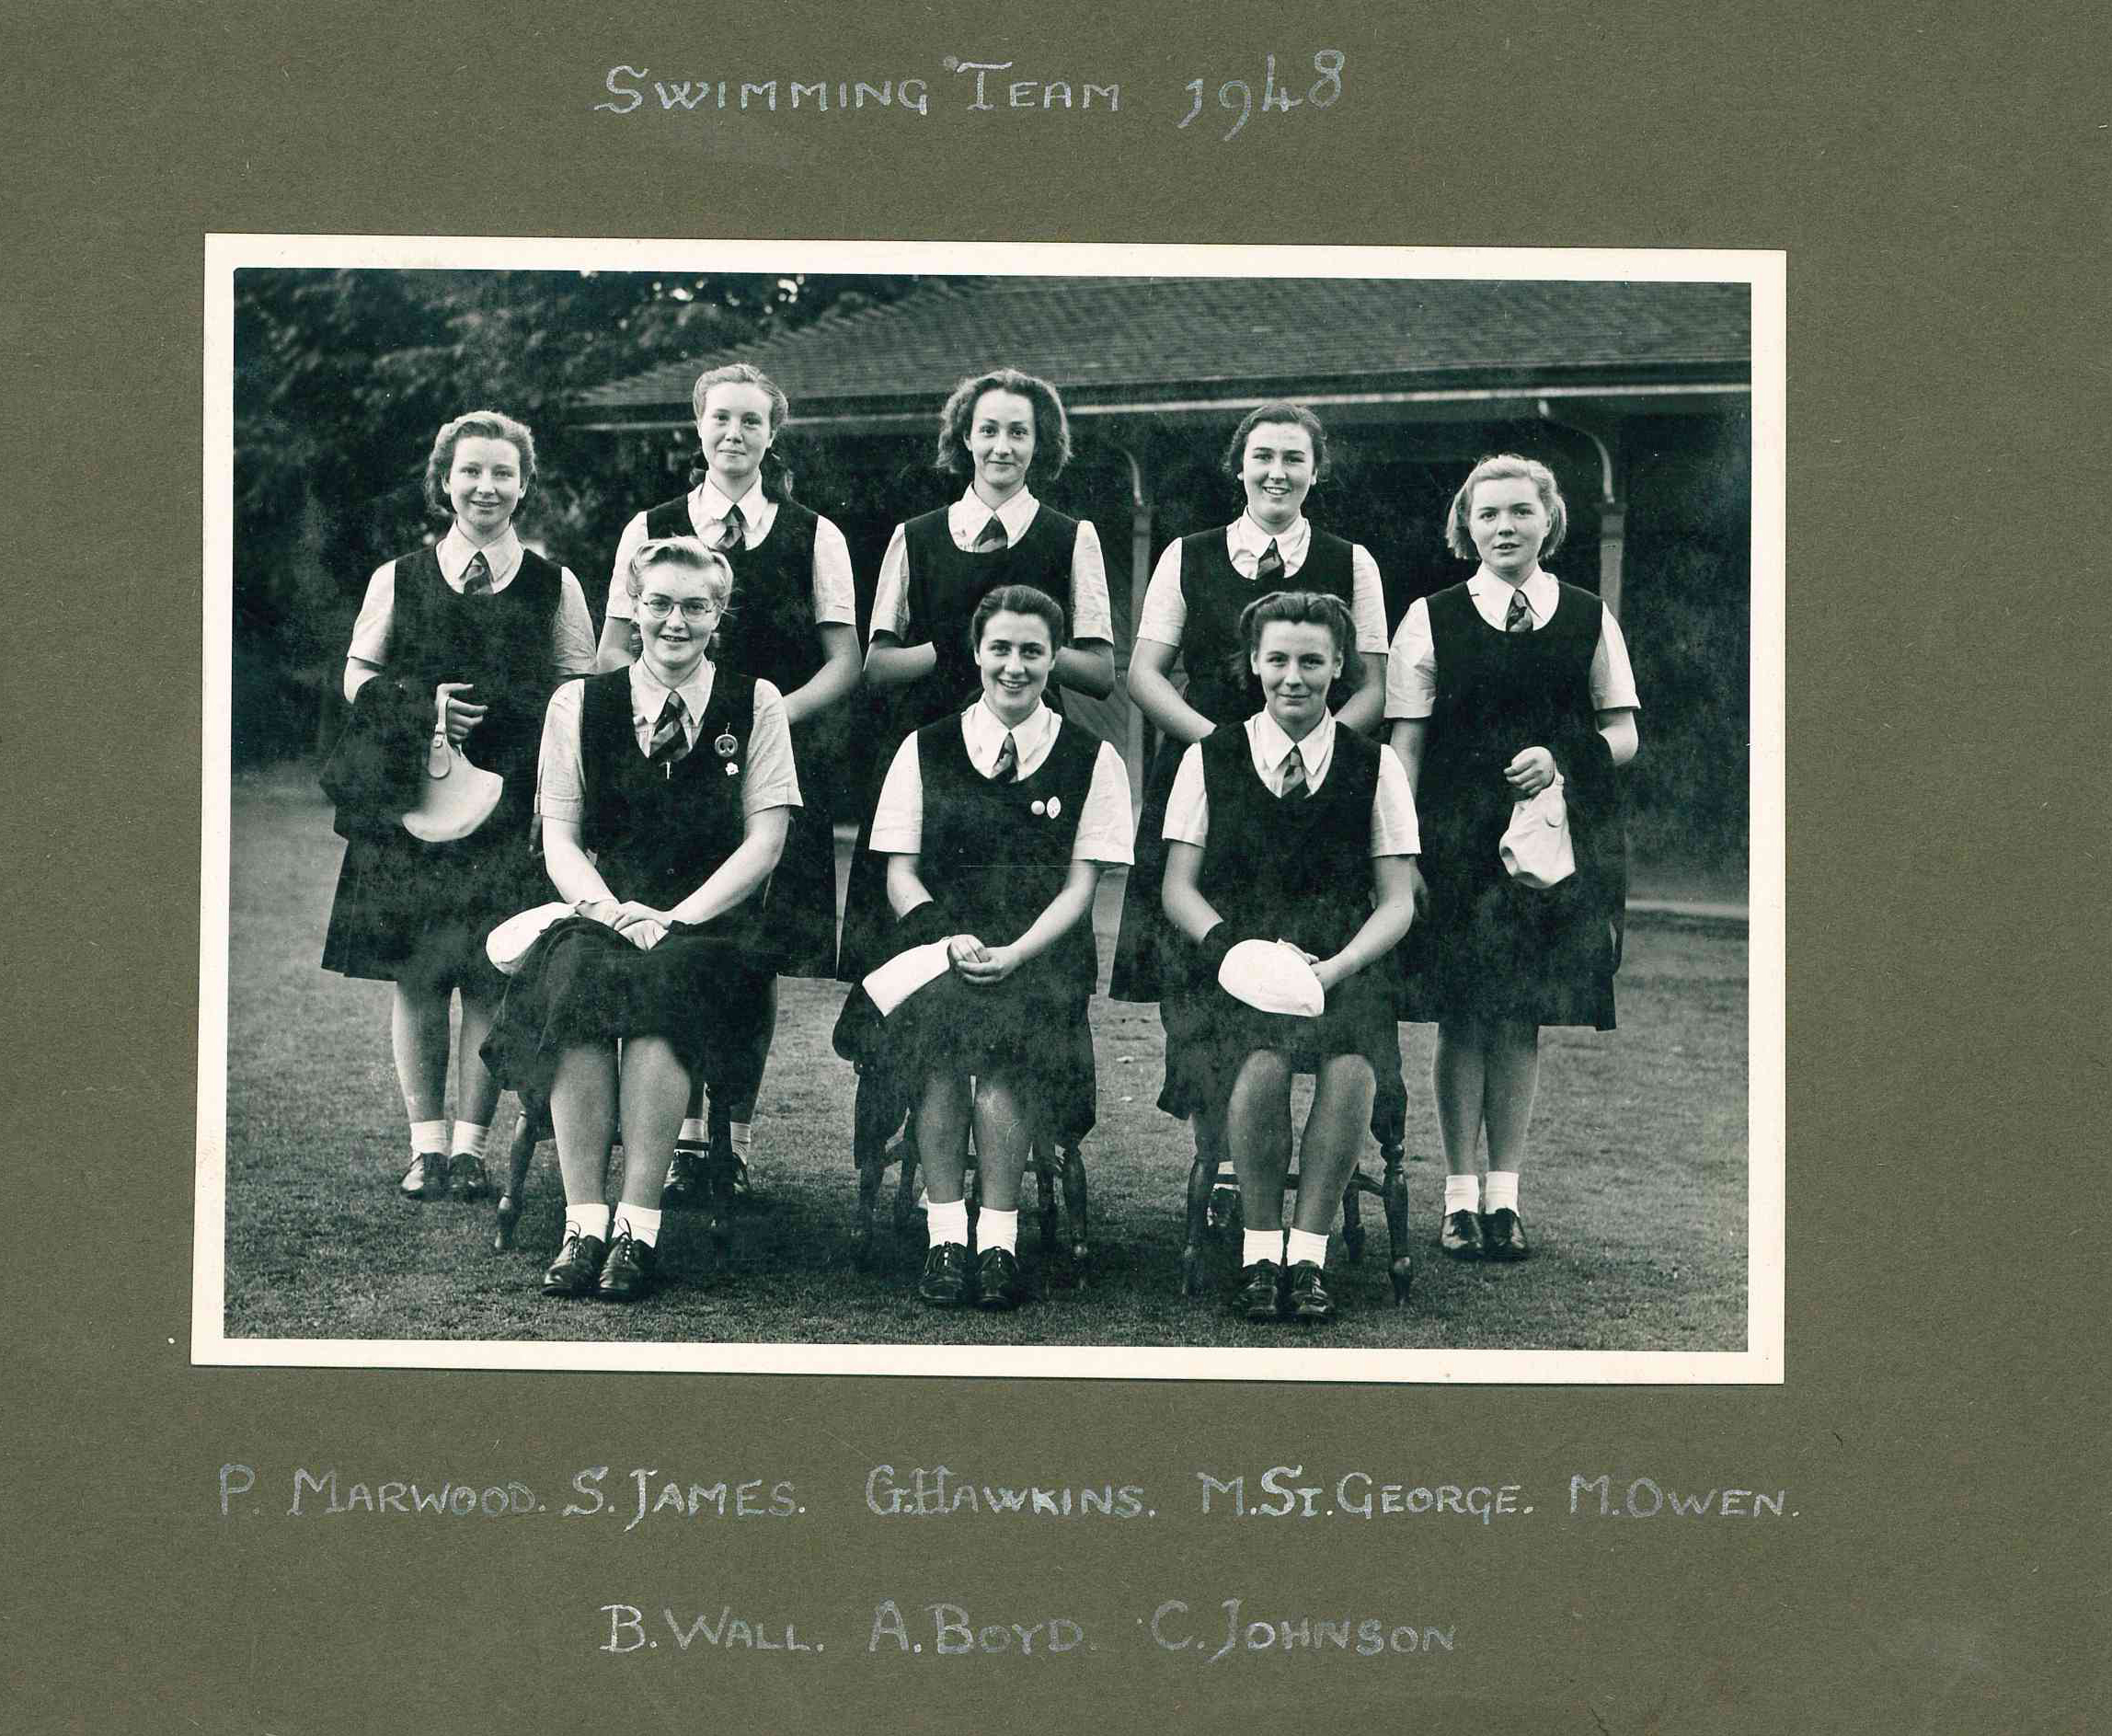 Hertford Swimming Team 1948